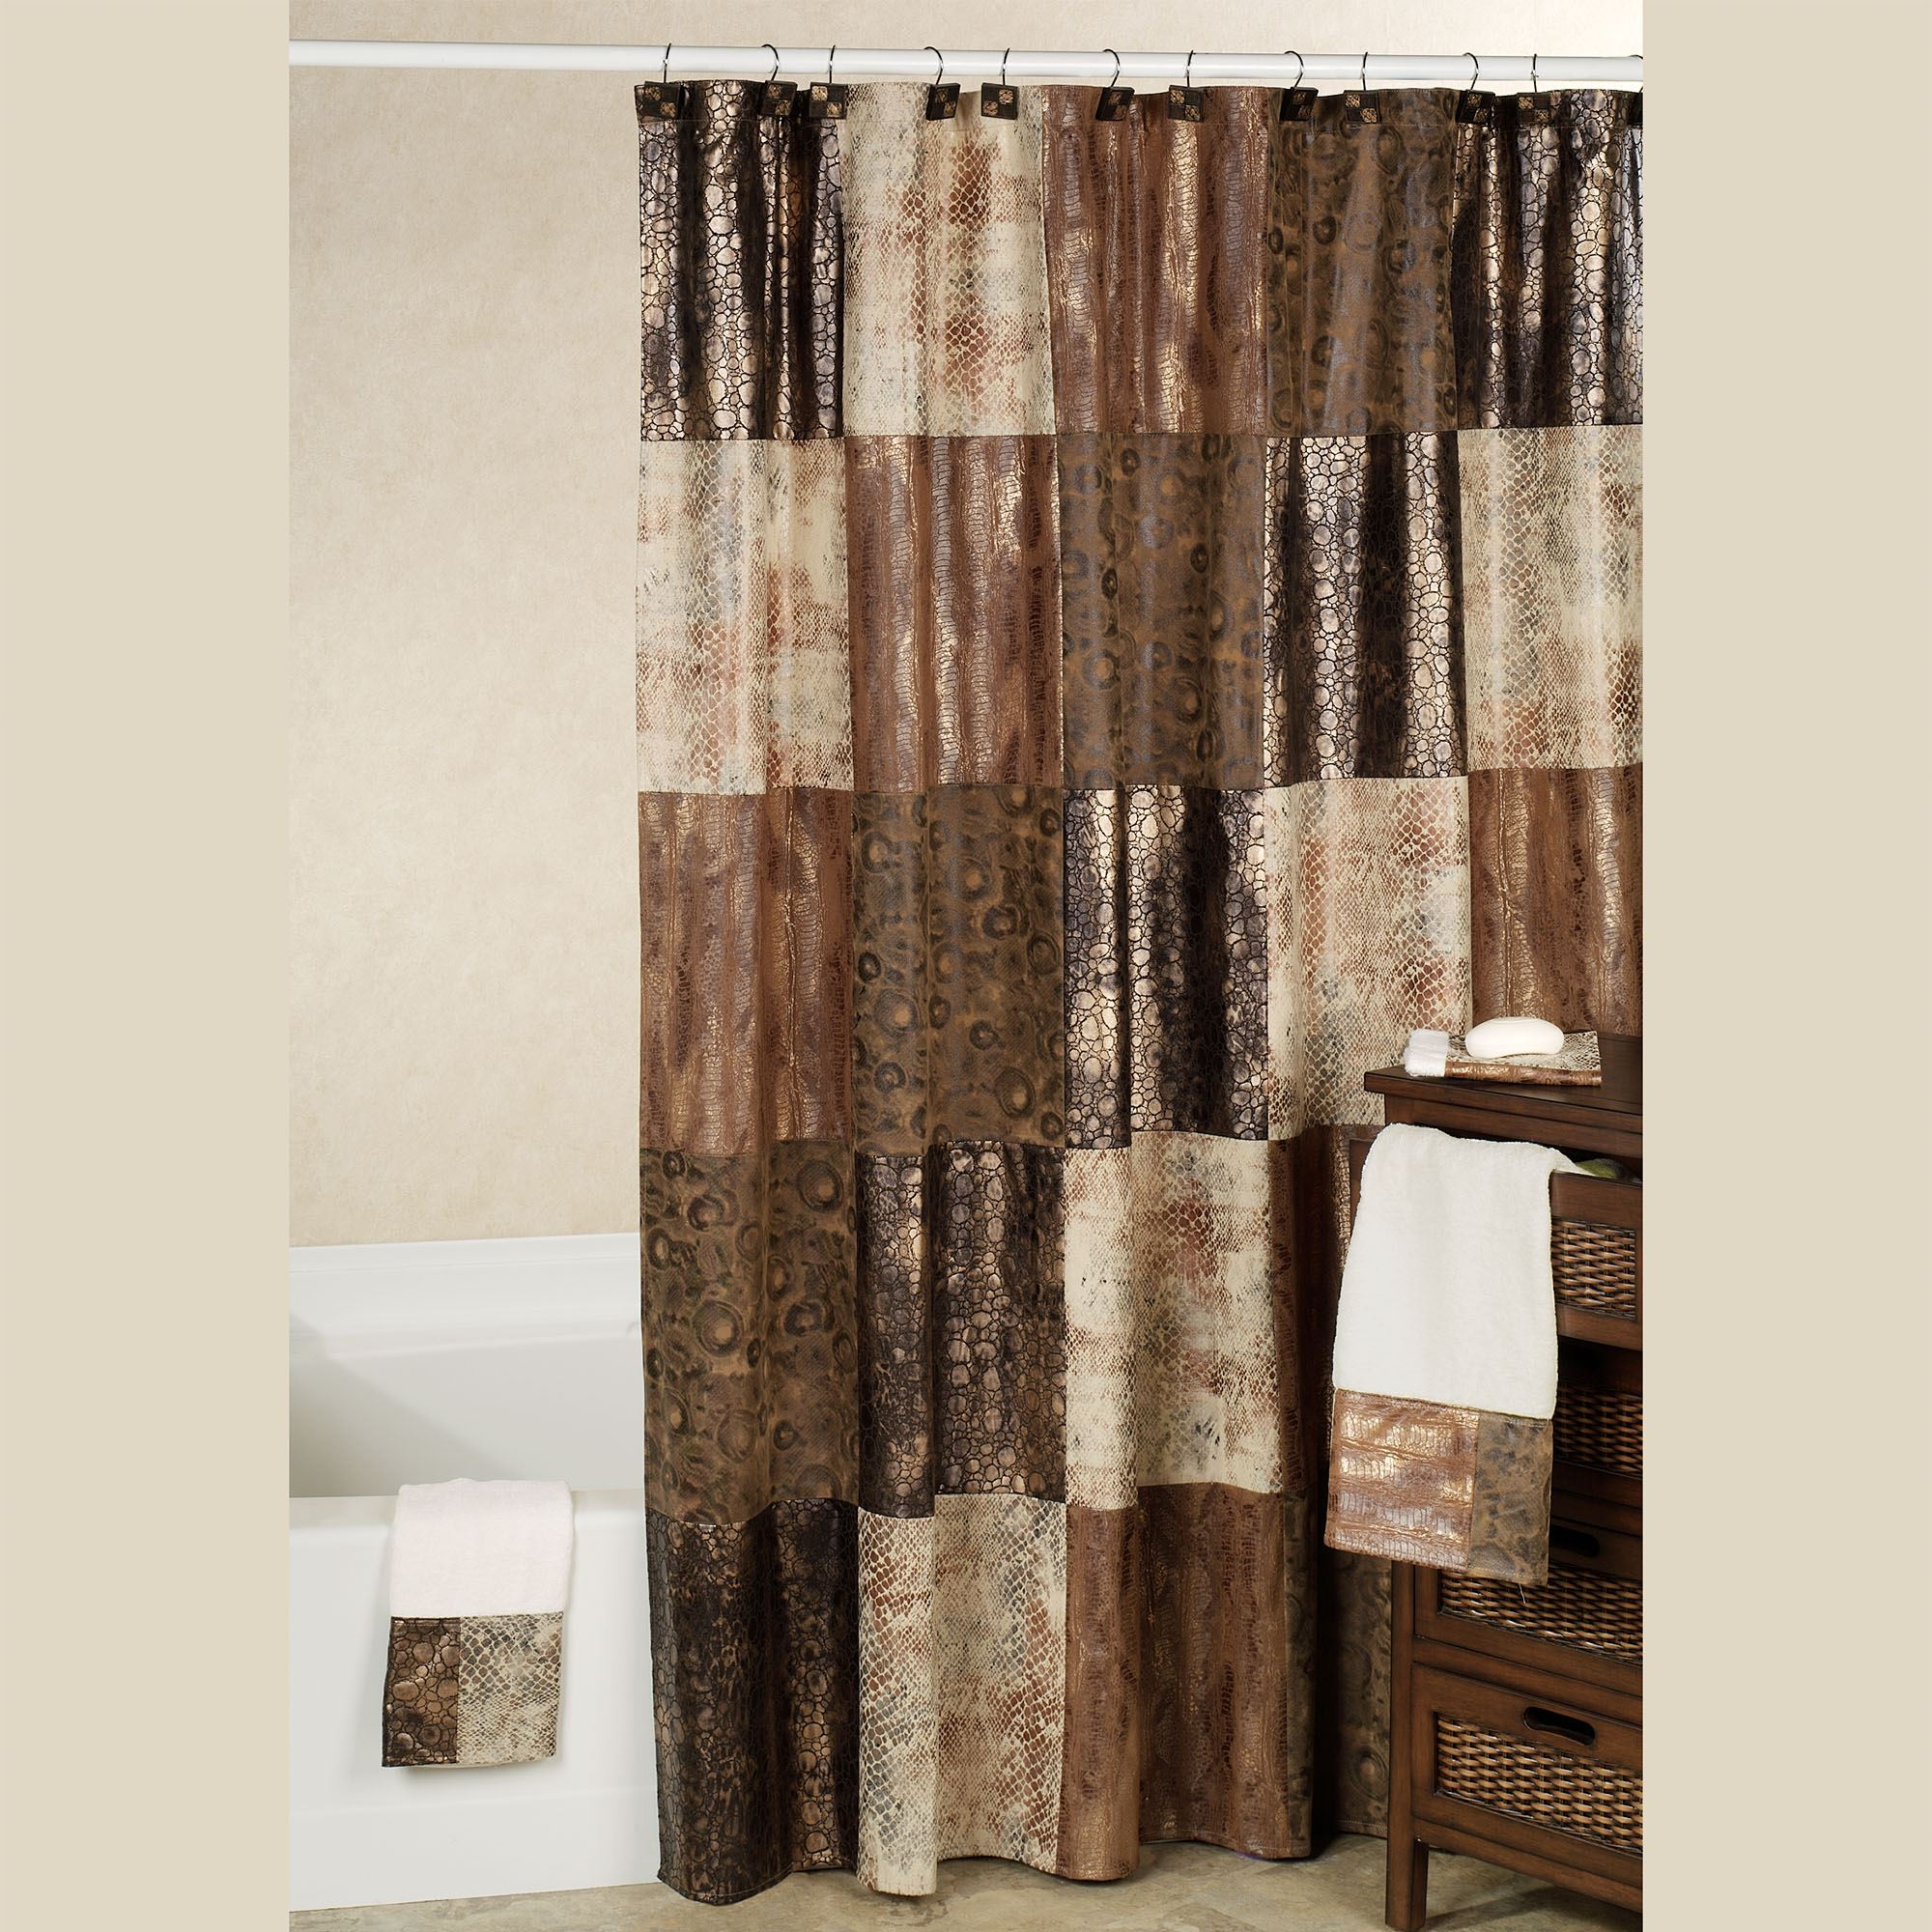 uk full com large images fresh long dkbzaweb tag rodlarge curtain imposing size of extra design classy shower tags bronze curtains